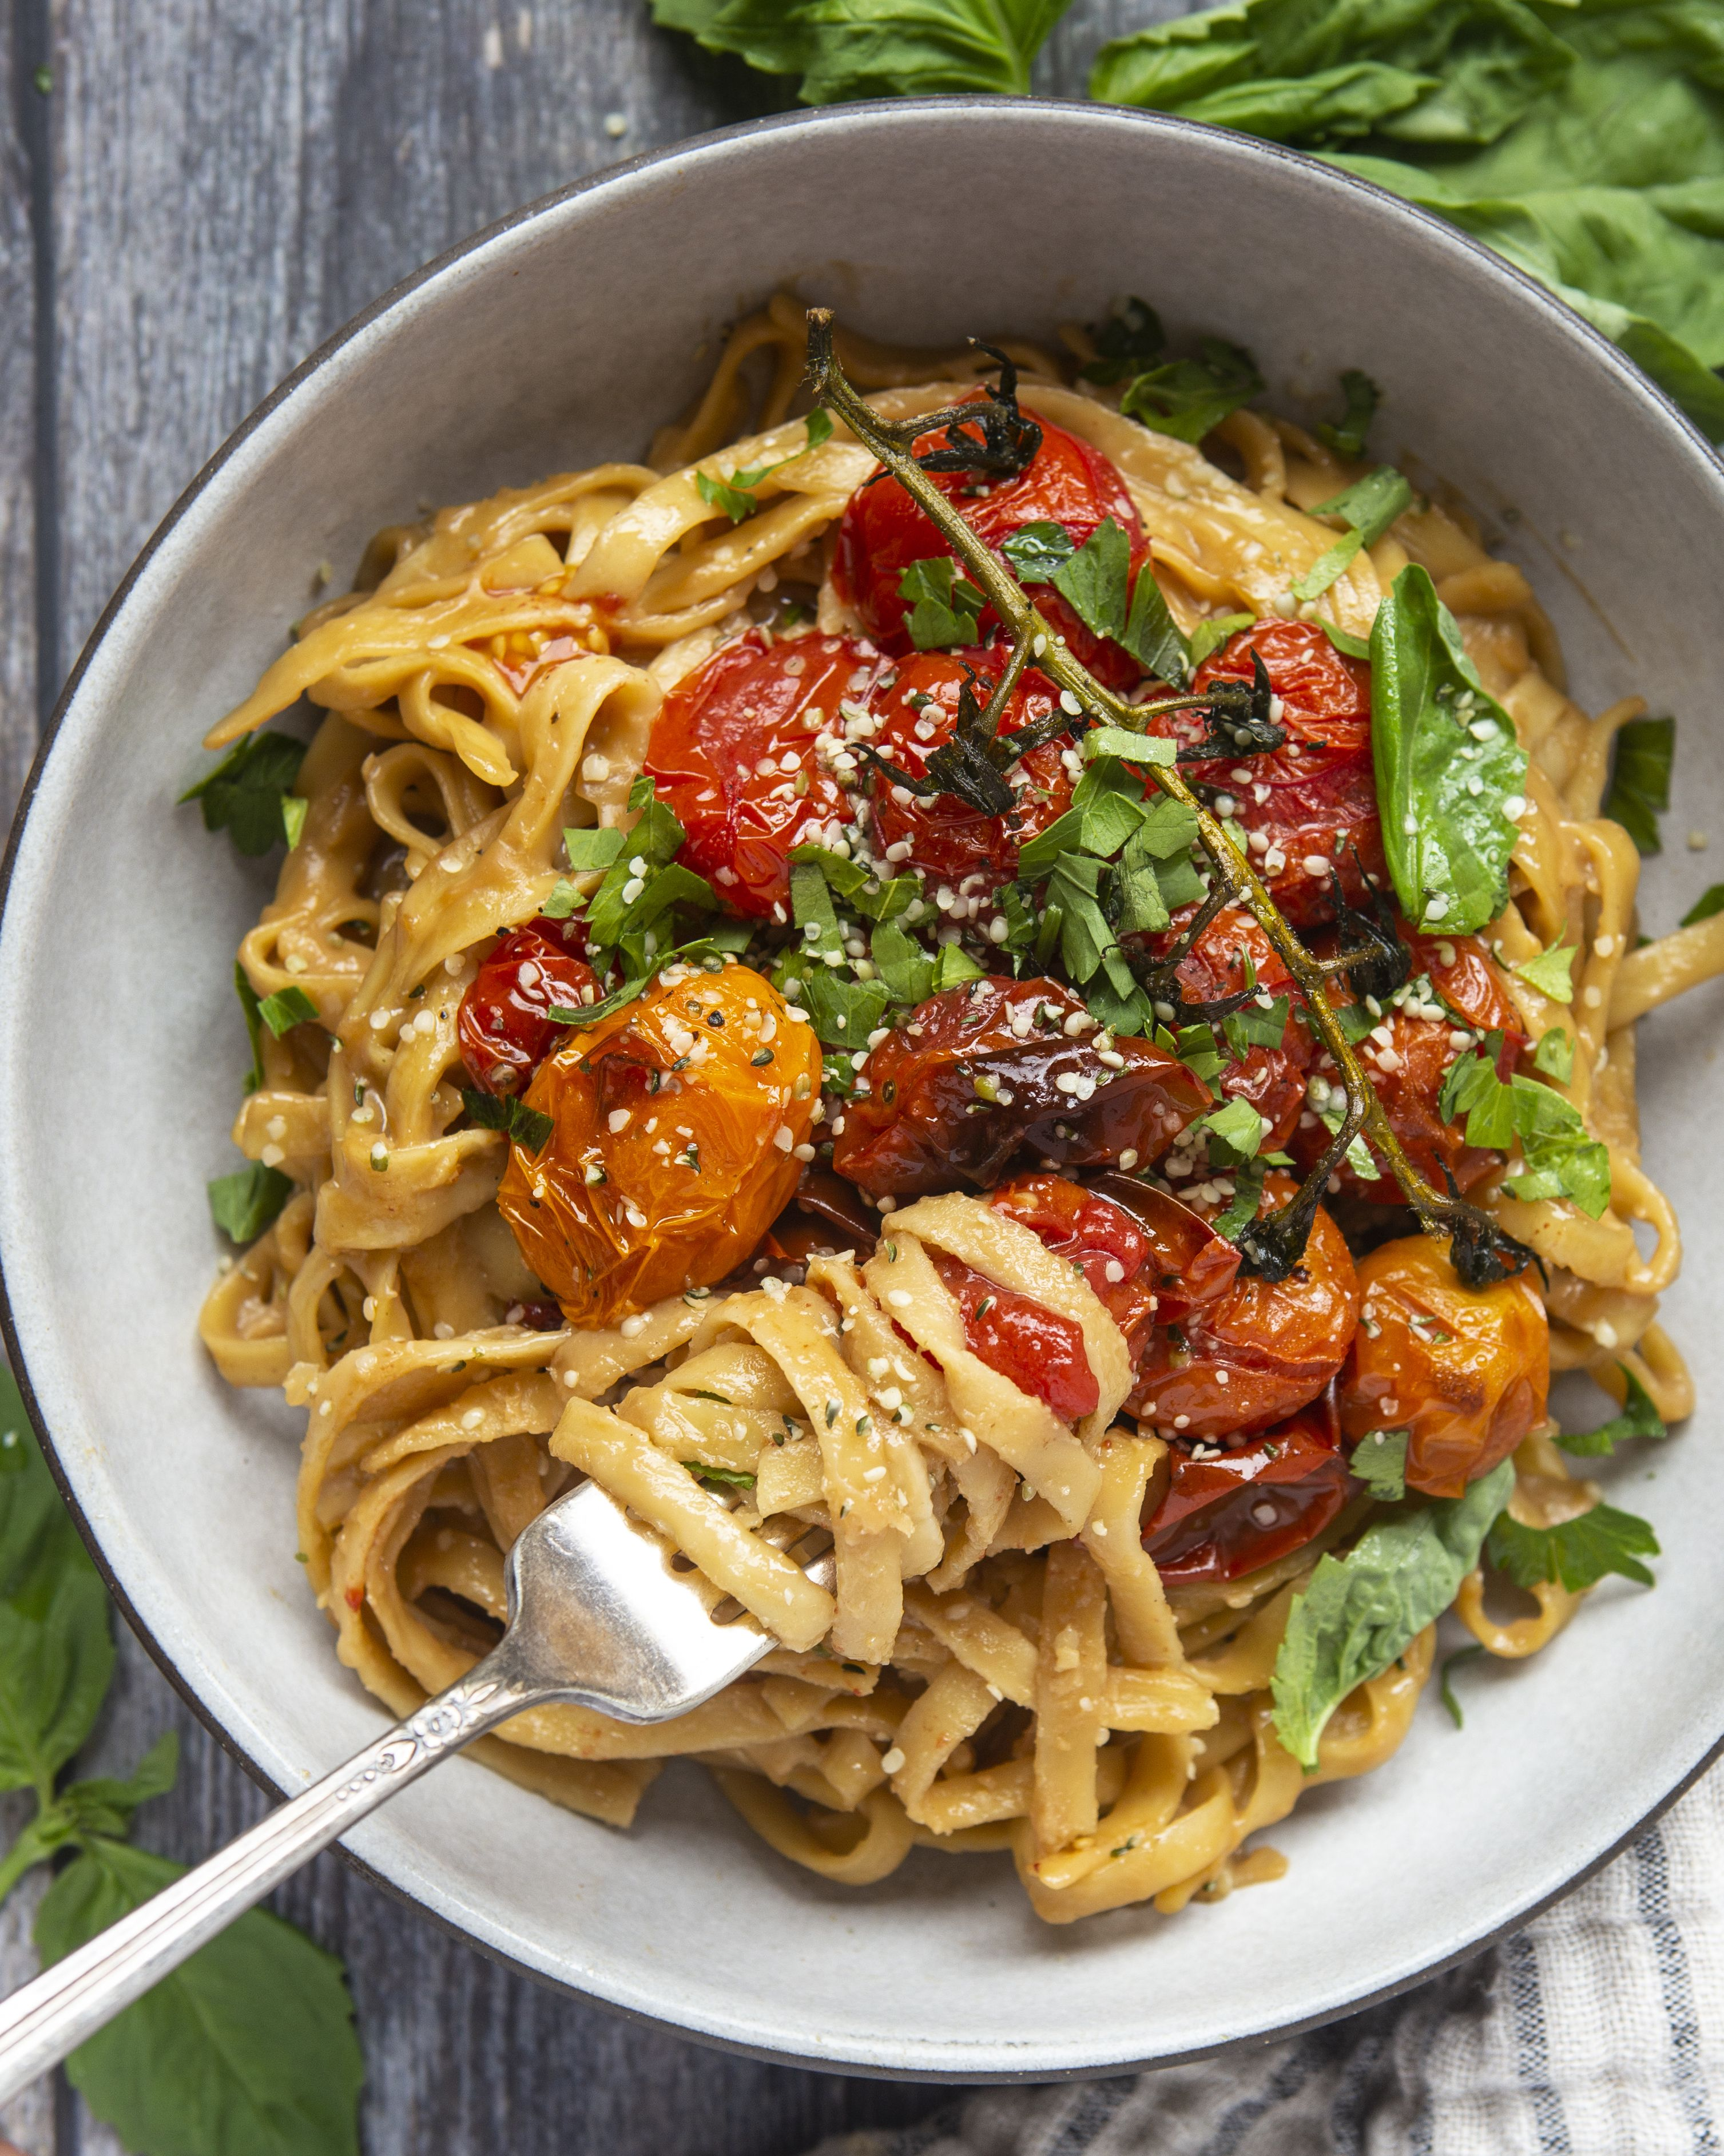 Creamy Garlic Fettuccine with Roasted Tomatoes